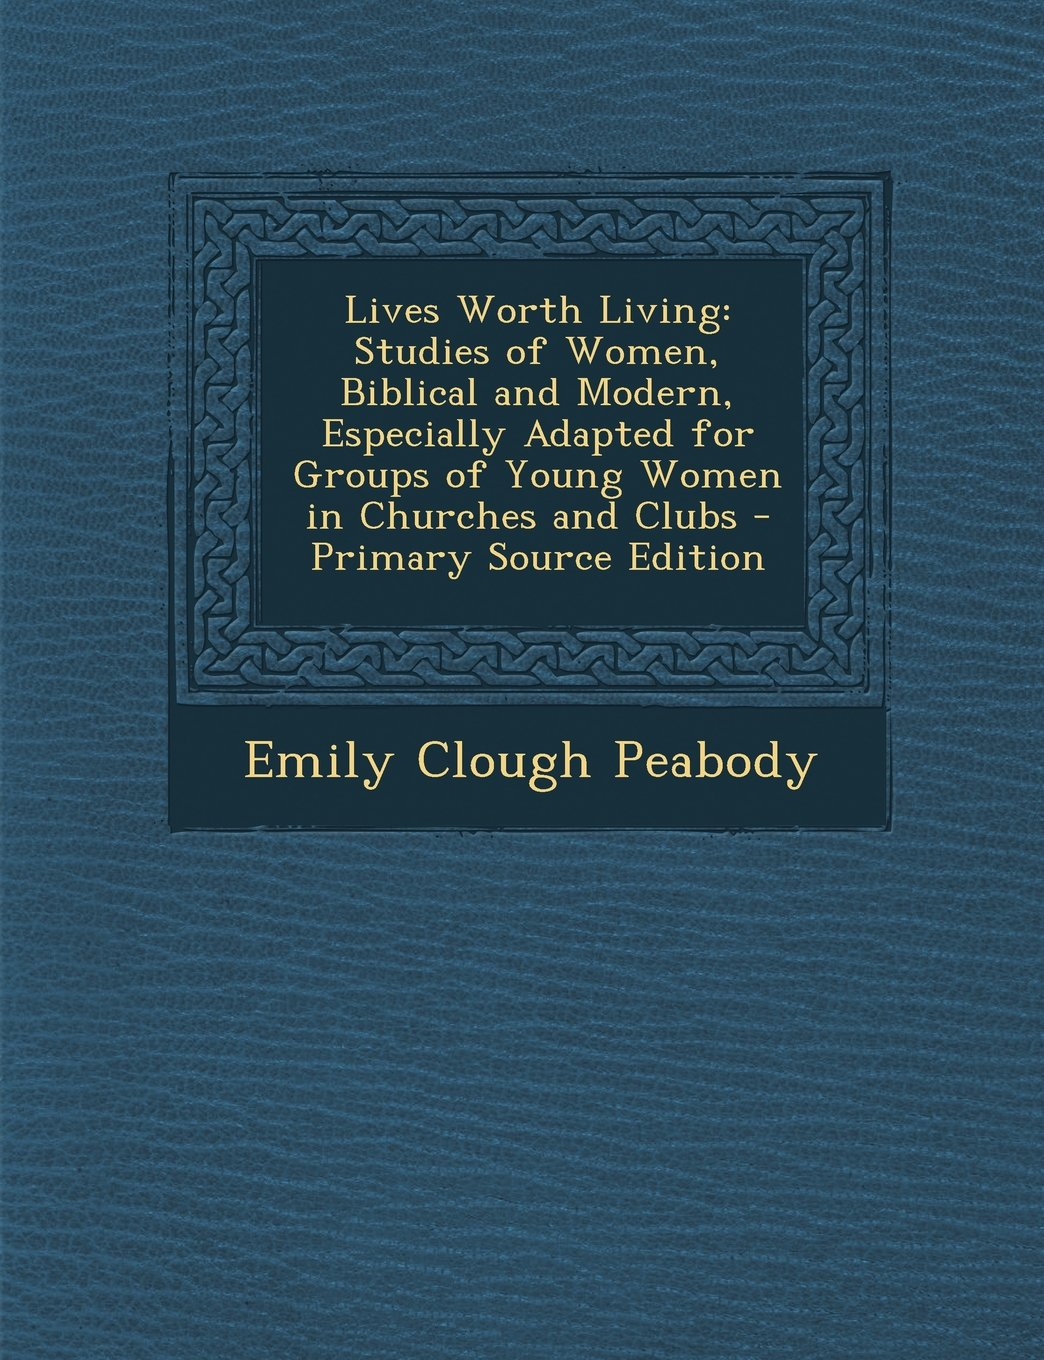 Download Lives Worth Living: Studies of Women, Biblical and Modern, Especially Adapted for Groups of Young Women in Churches and Clubs - Primary So pdf epub